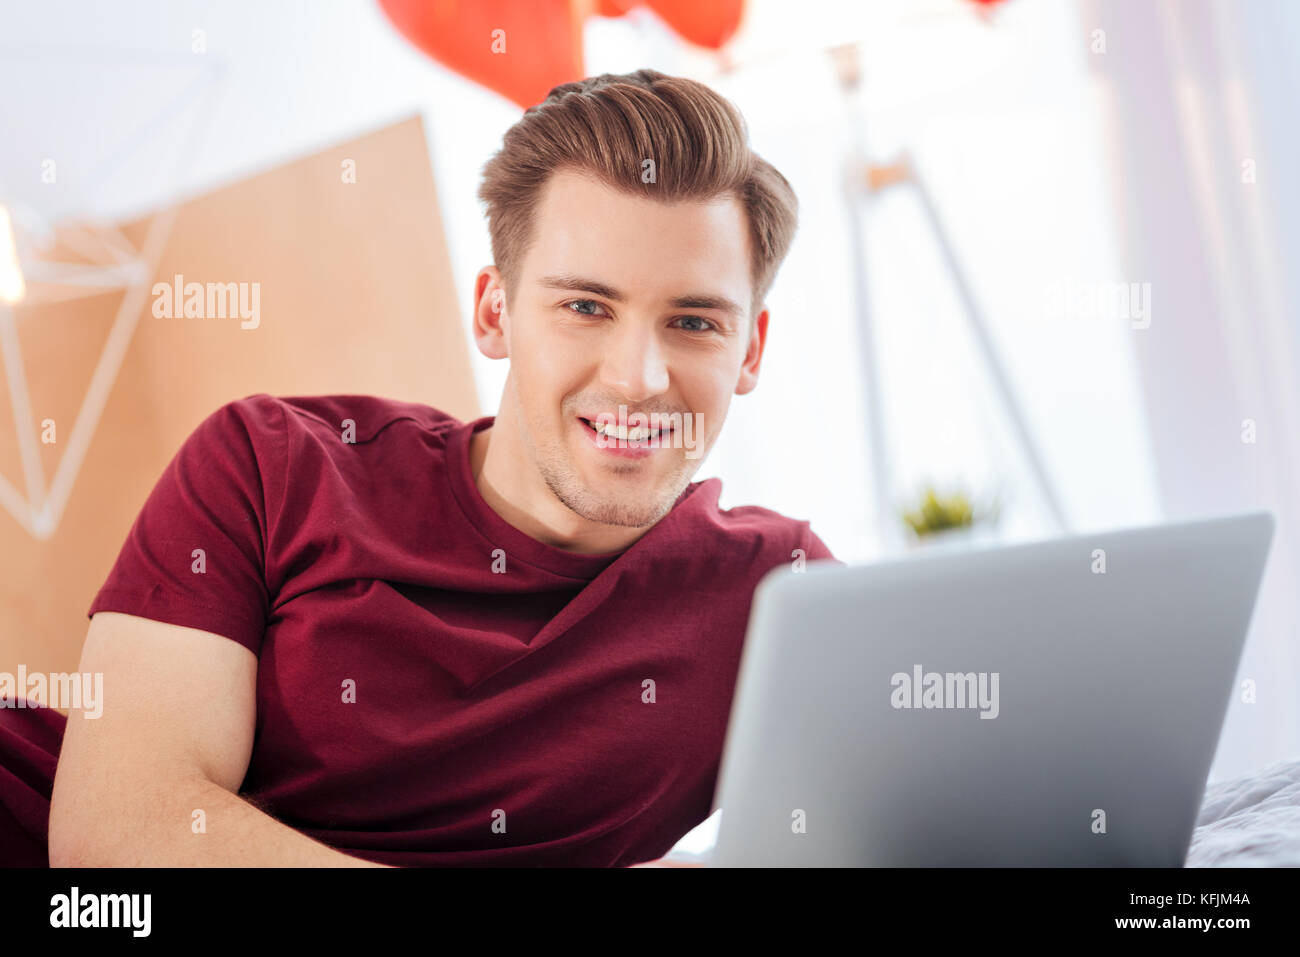 Handsome gentleman looking into camera with cheerful smile - Stock Image